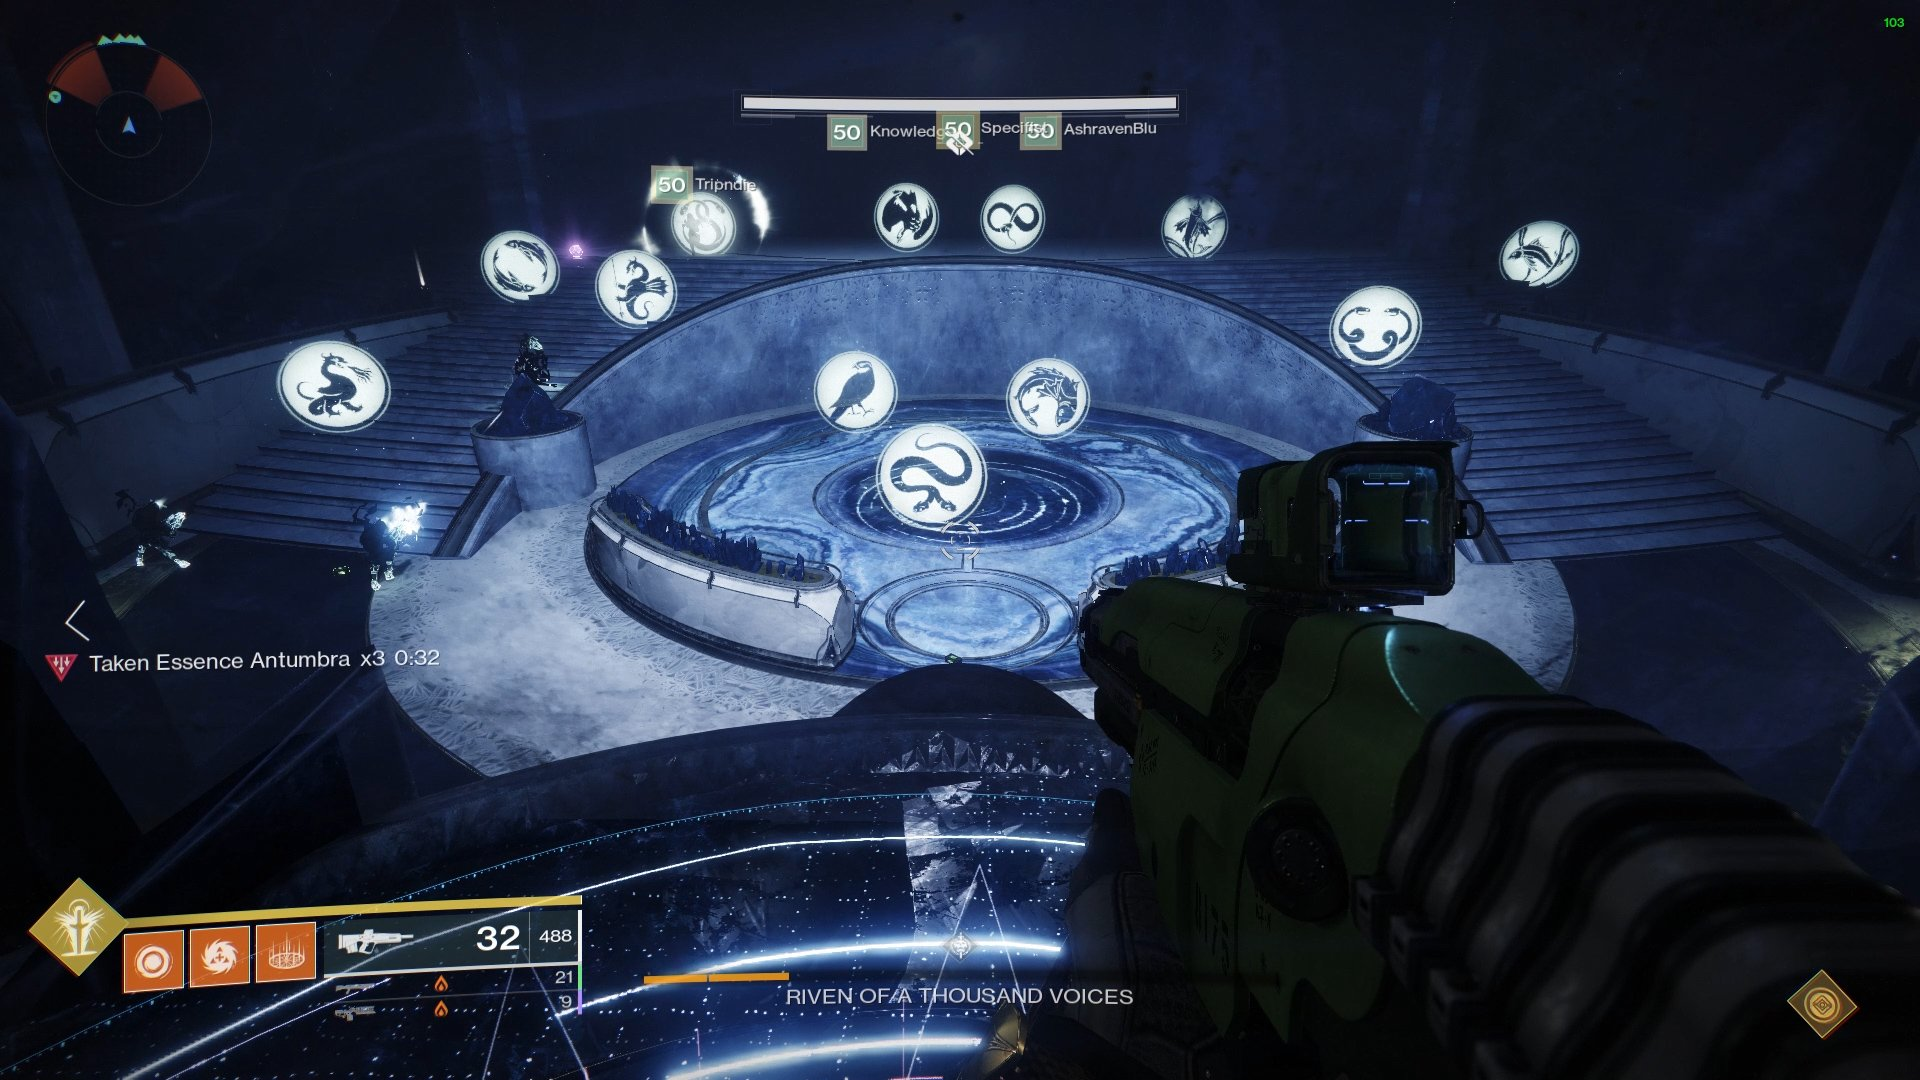 The player behind the glass will need to direct the player with the Taken Essence to the correct symbol to be cleansed.